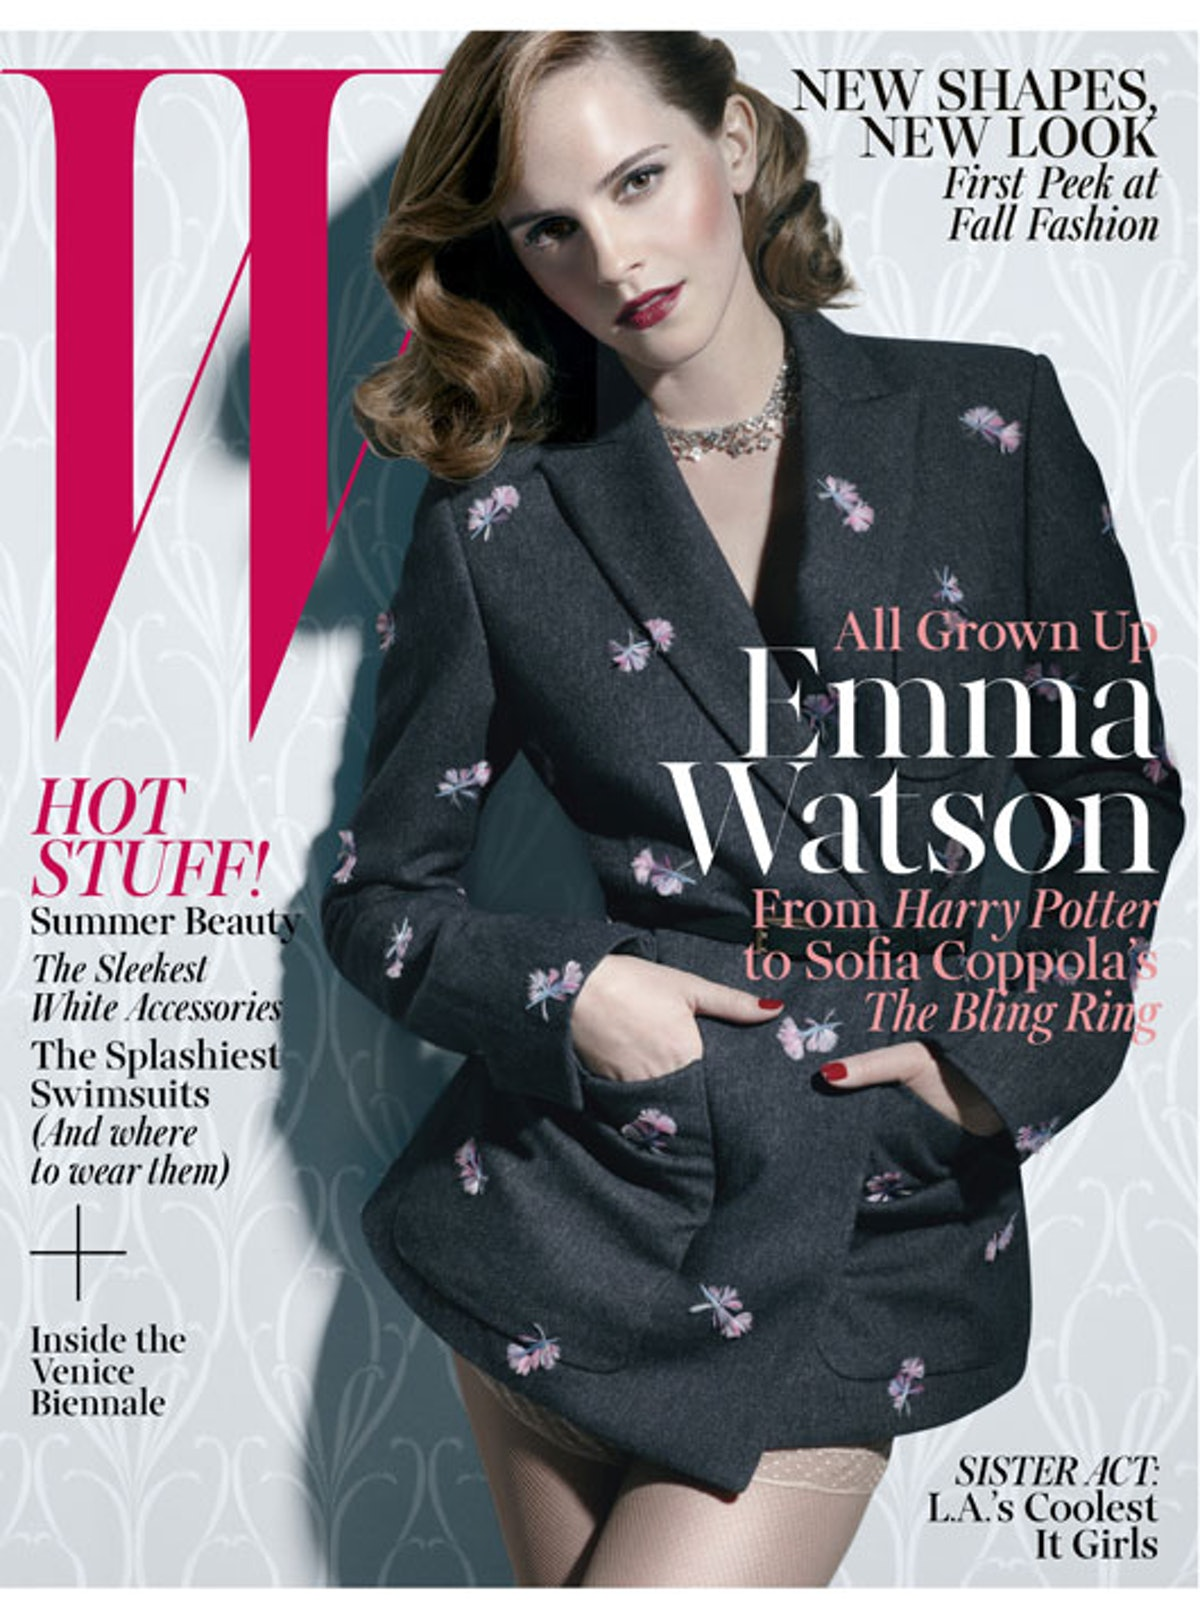 cess-emma-watson-the-bling-ring-actress-cover-story-04-l.jpg